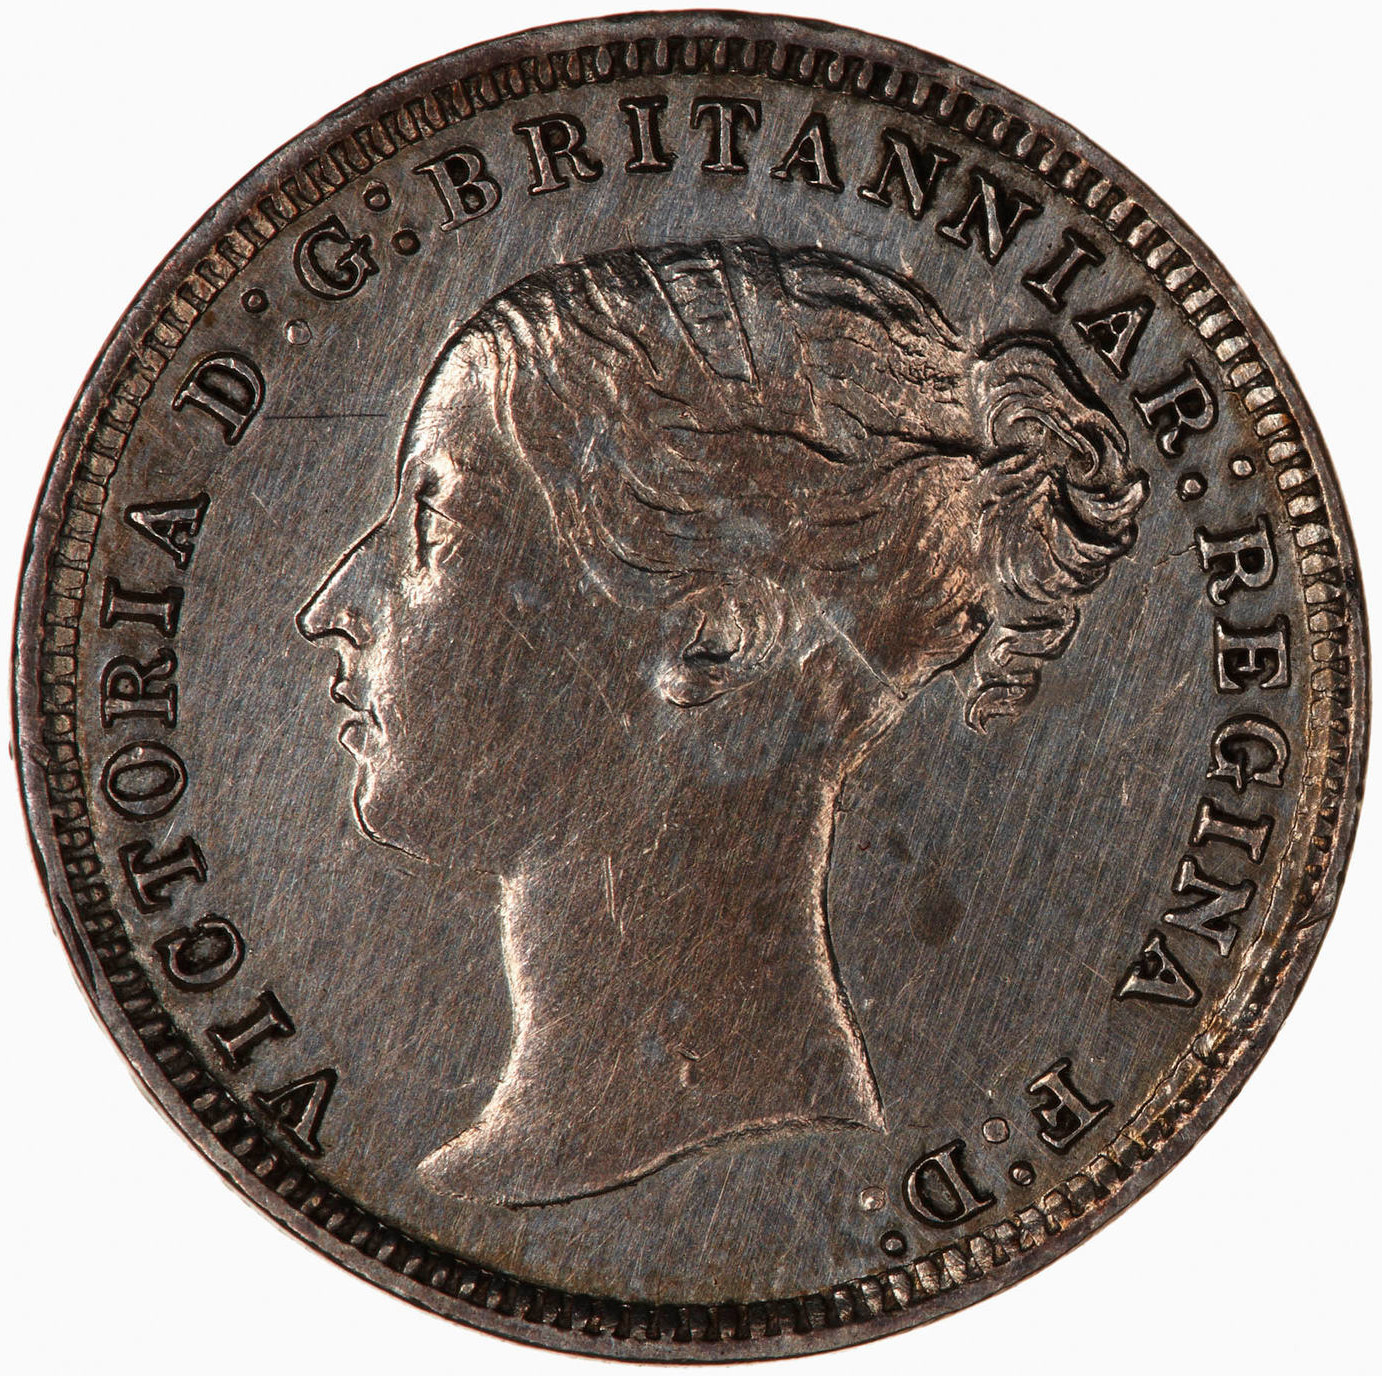 Threepence 1877 (Maundy): Photo Coin - Threepence, Queen Victoria, Great Britain, 1877